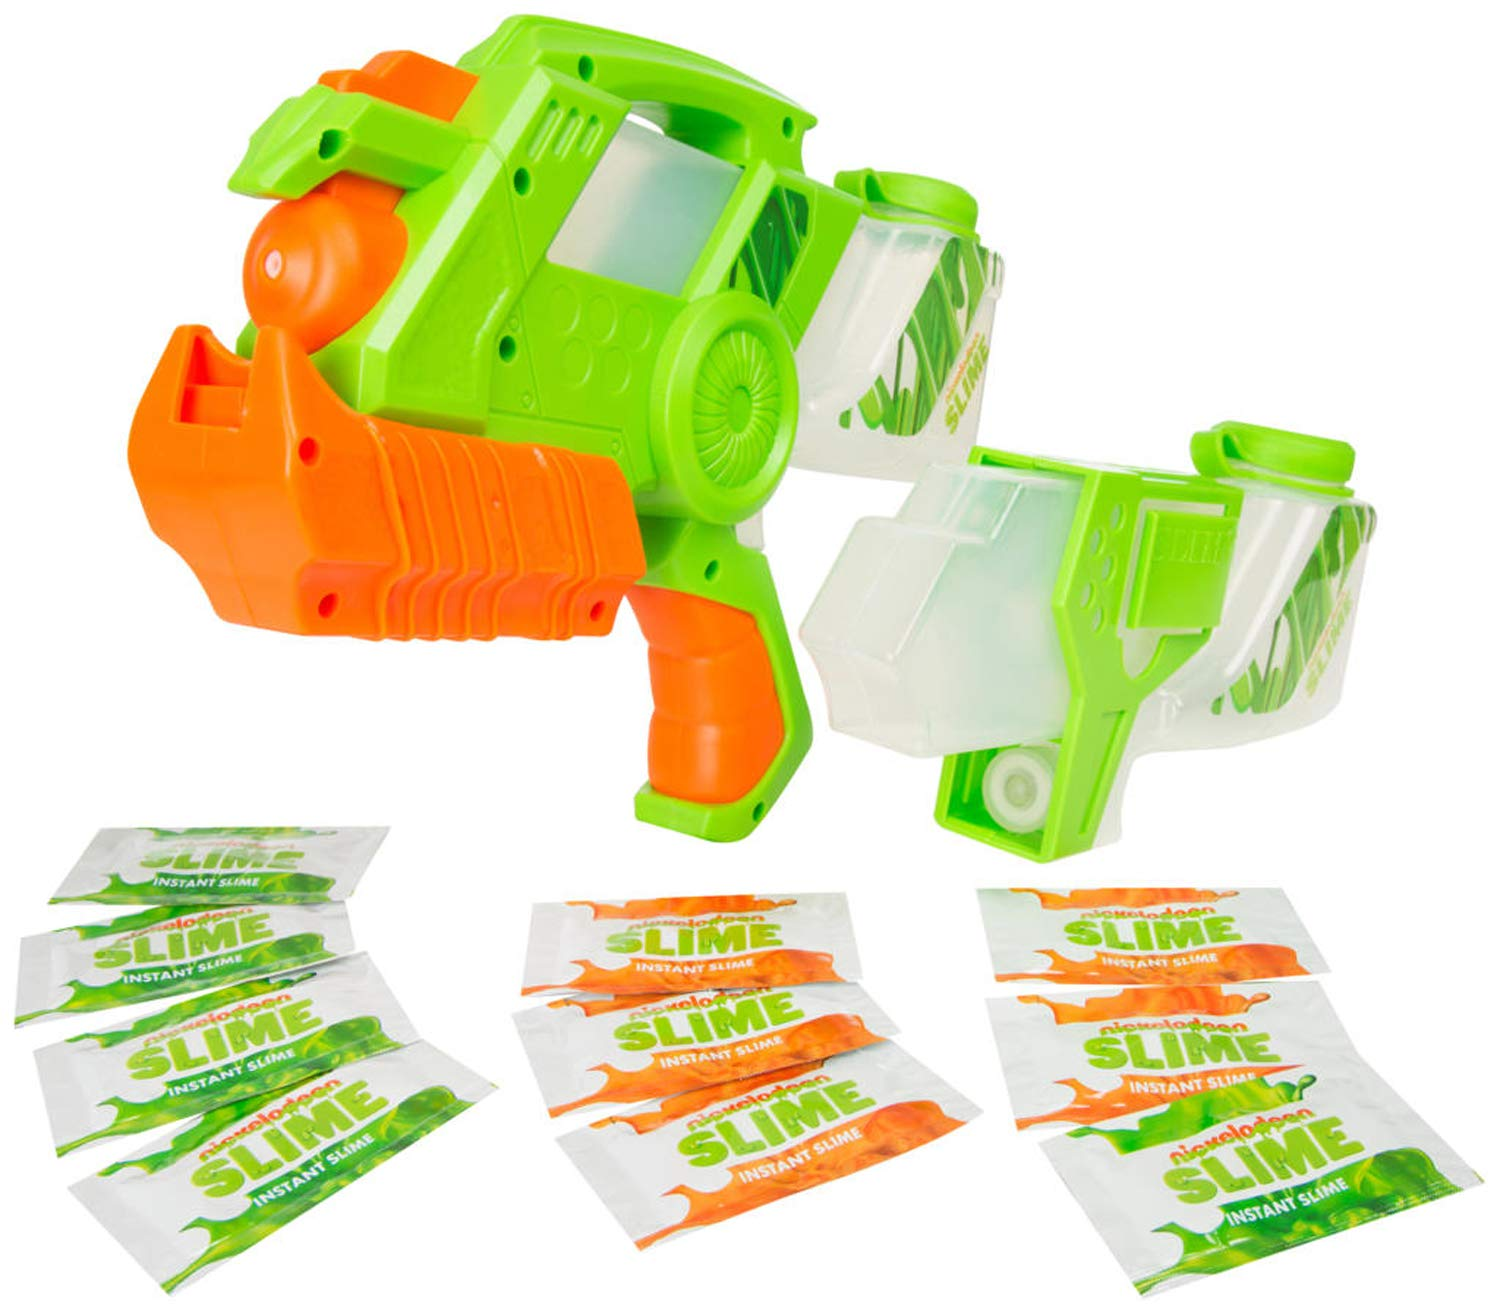 Nickelodeon Slime Hyper Blaster Shooter by Nickelodeon (Image #4)